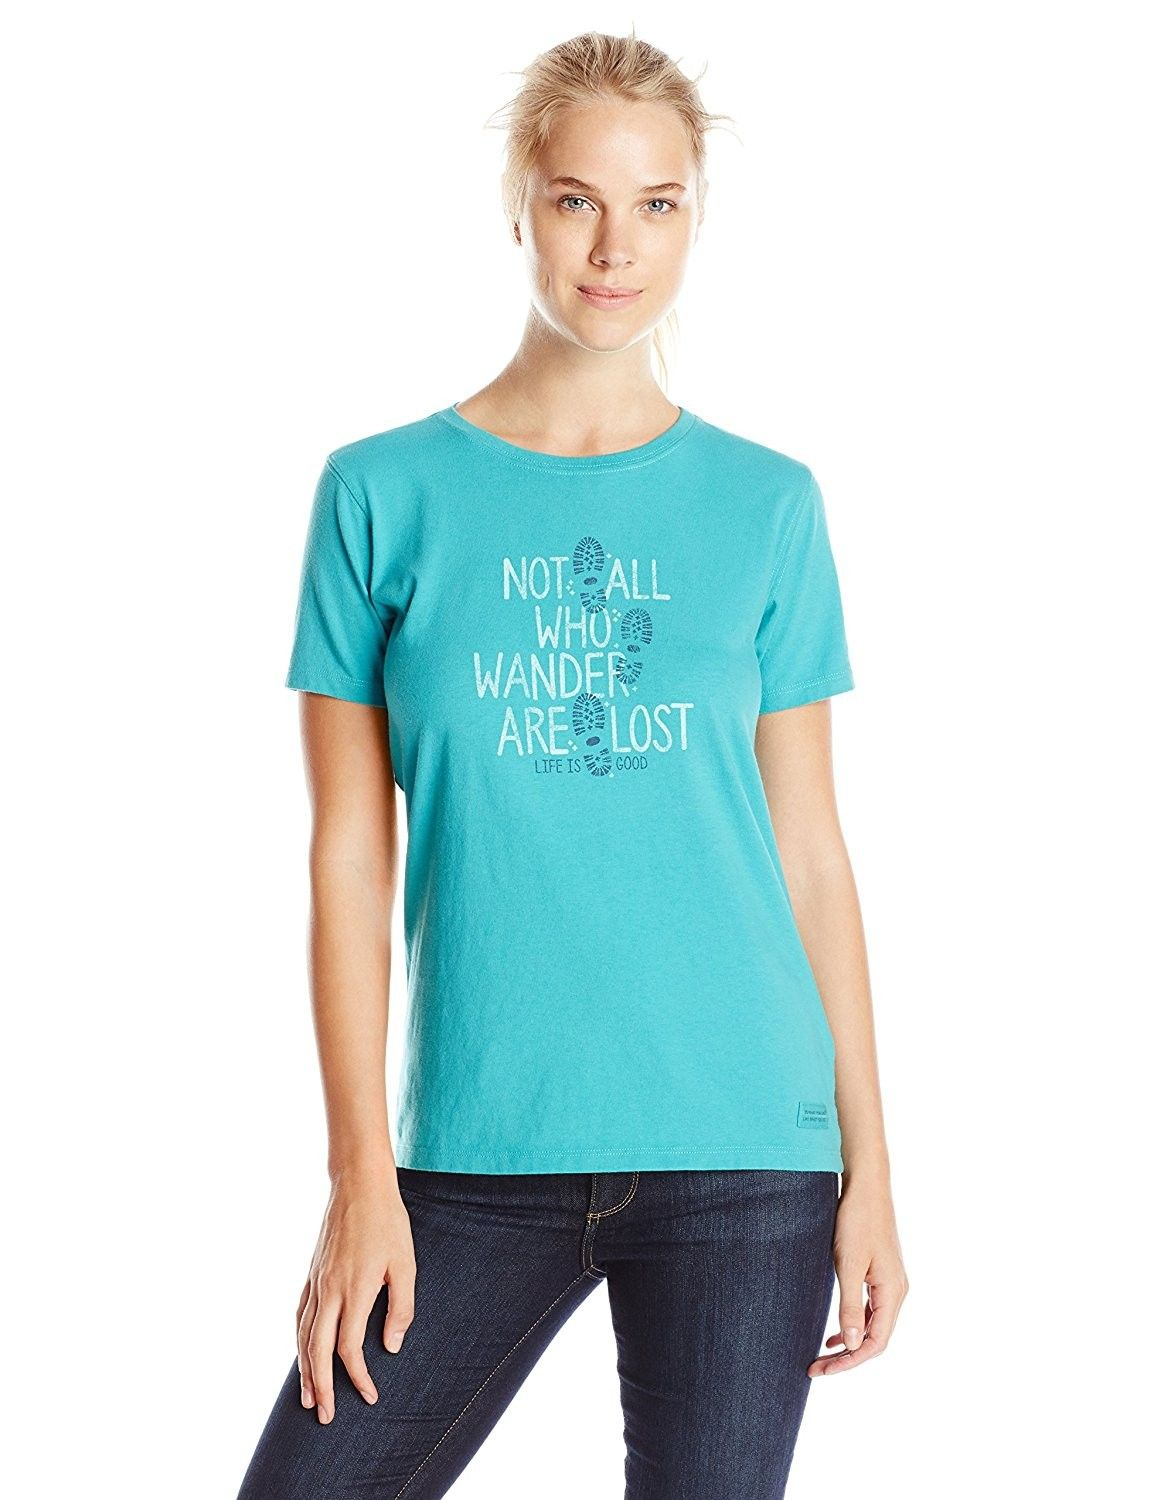 d59bd666 Women's All Wander Sans Crusher Tee - Teal Blue - CH11PM1M9U3,Women's  Clothing, Active, Active Shirts & Tees #women #clothing #fashion #style  #sexy #outfits ...